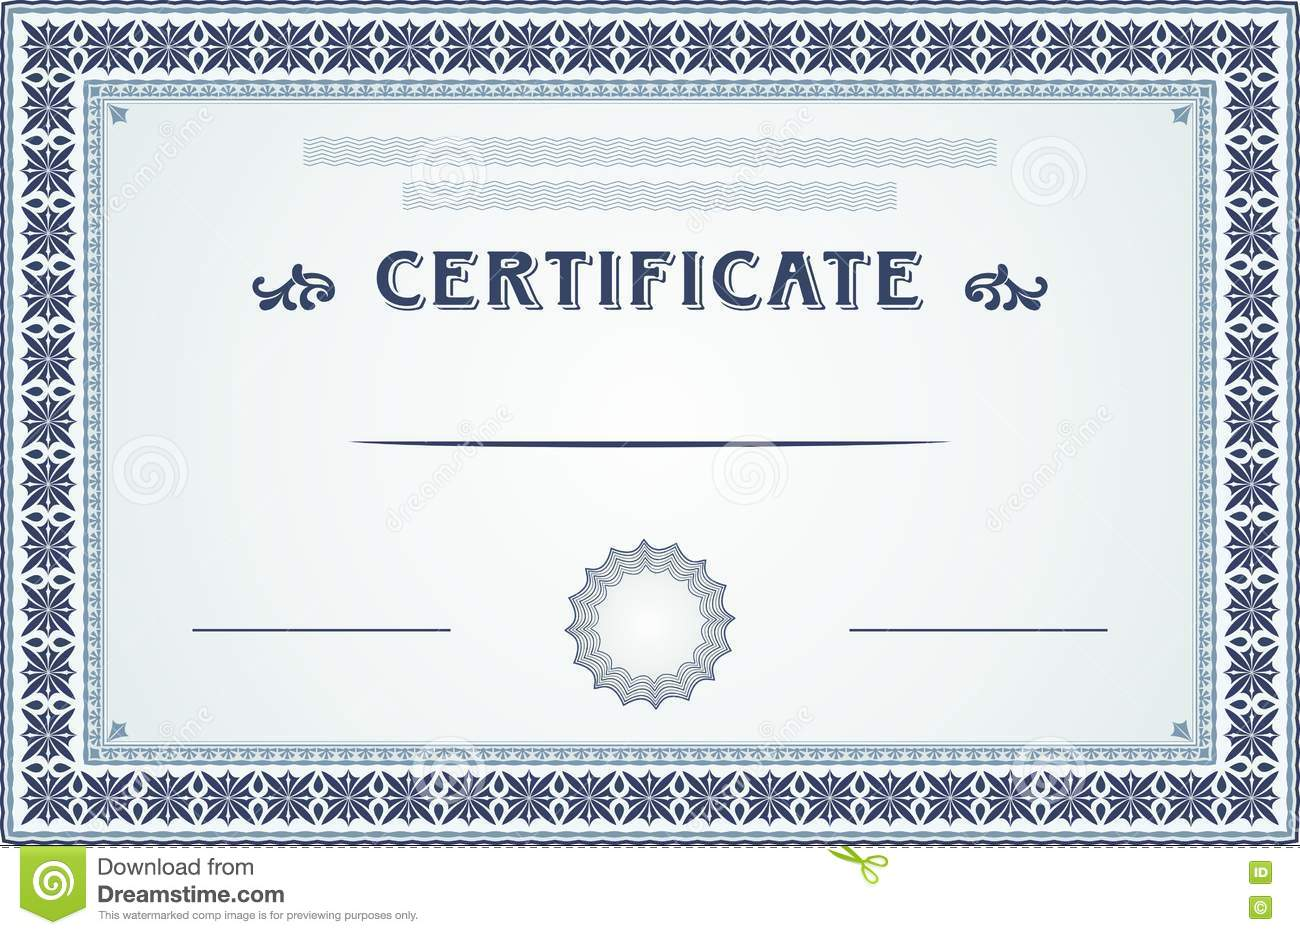 Certificate Border And Template Design Stock Vector Illustration